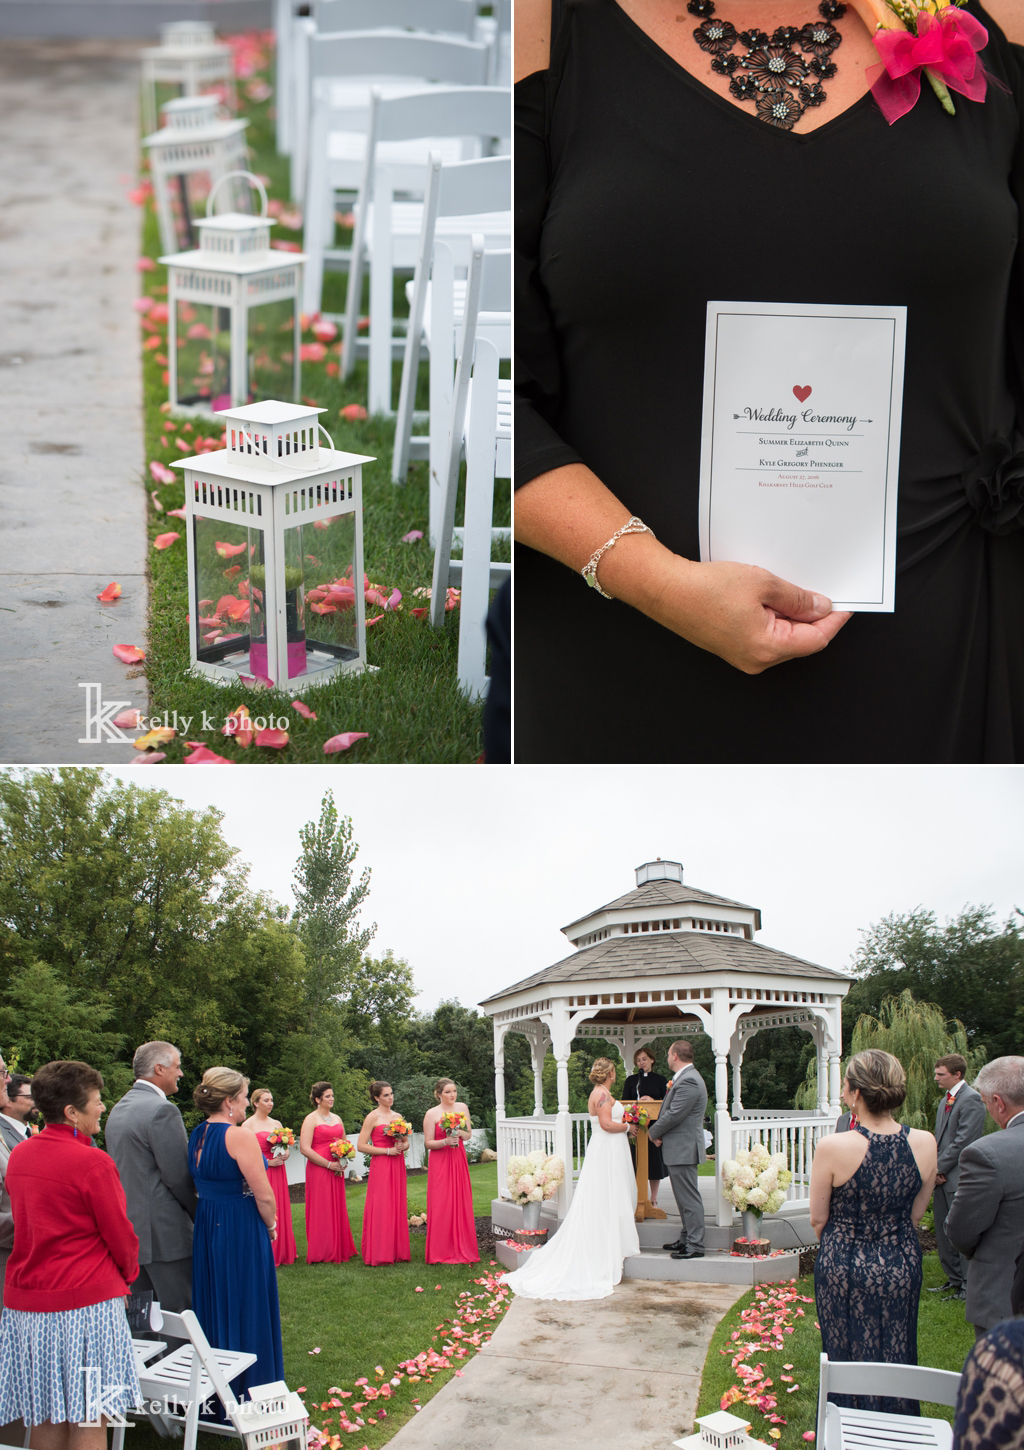 kilkarneyhillsgolfcourse_wedding